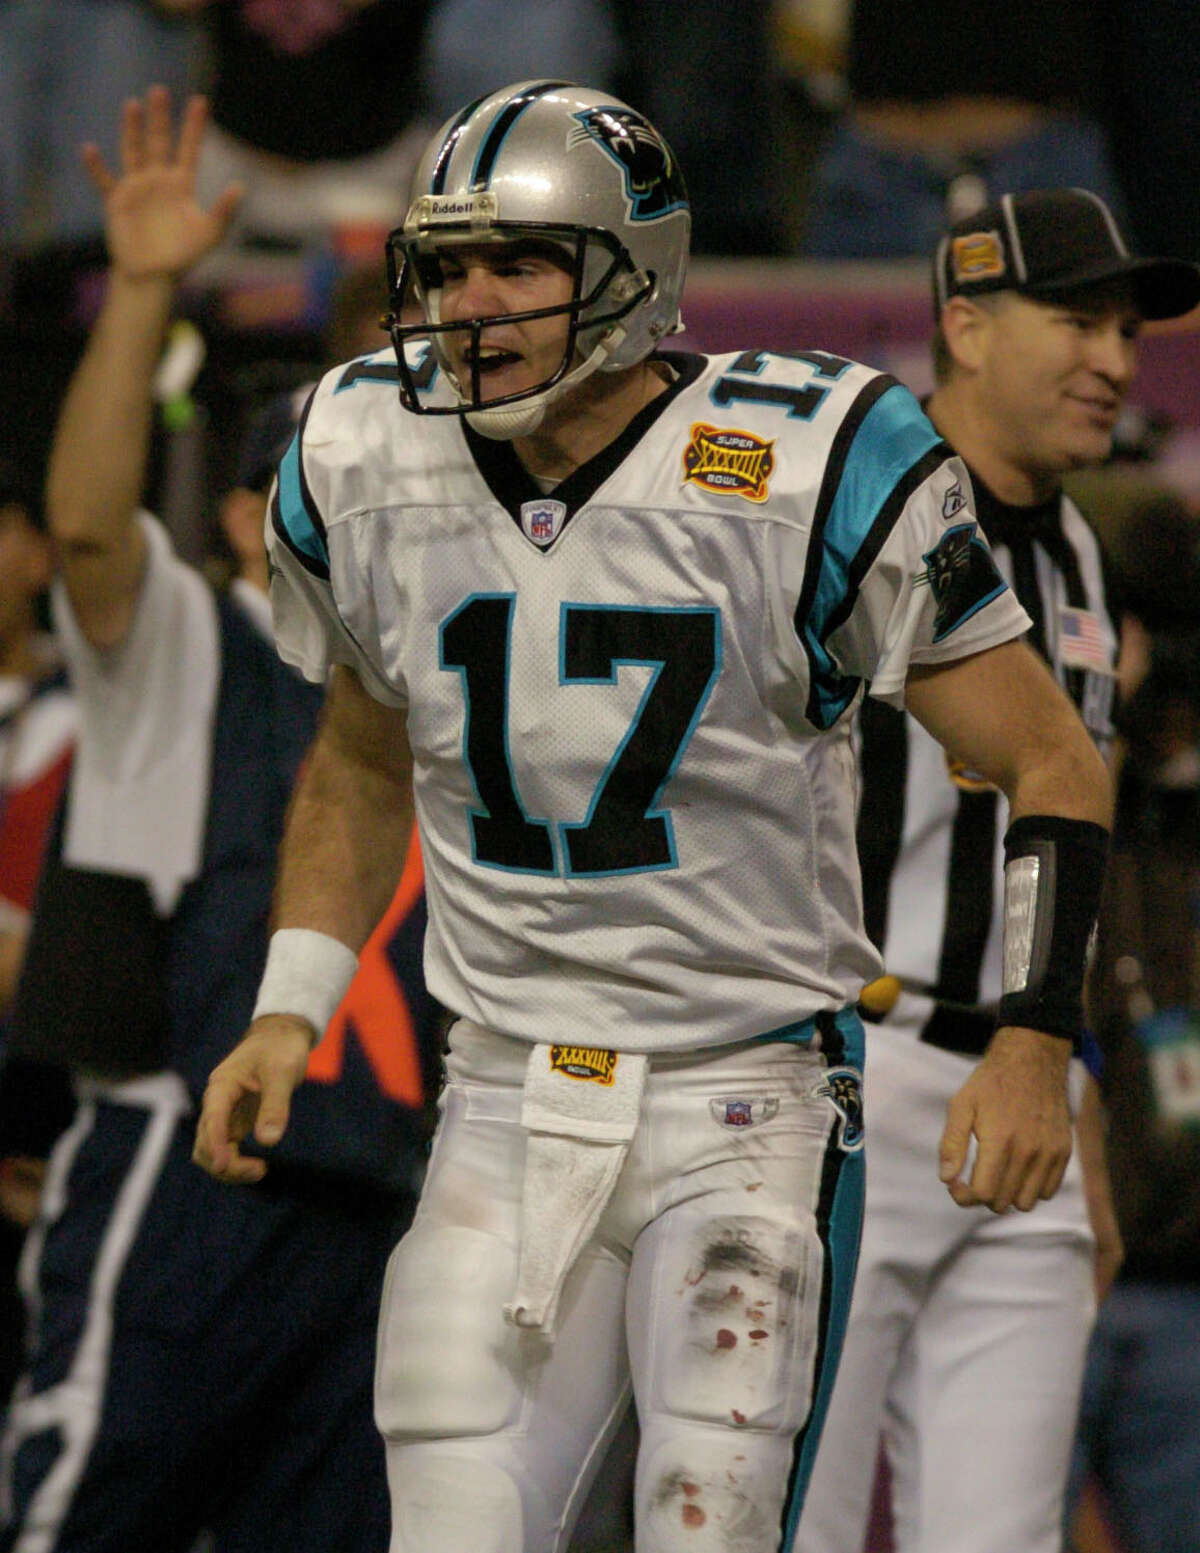 Carolina Panthers, 2003 Preseason: 4-0 Regular season: 11-5 Two seasons removed from going 1-15, the Panthers put together a stunning run to the Super Bowl. After winning the NFC South, they beat the Cowboys, Rams (in double overtime on the road) and Eagles (on the road) to make the Super Bowl. At then-Reliant Stadium, they battled the Patriots to a standstill before losing on Adam Vinatieri's last-second field goal.